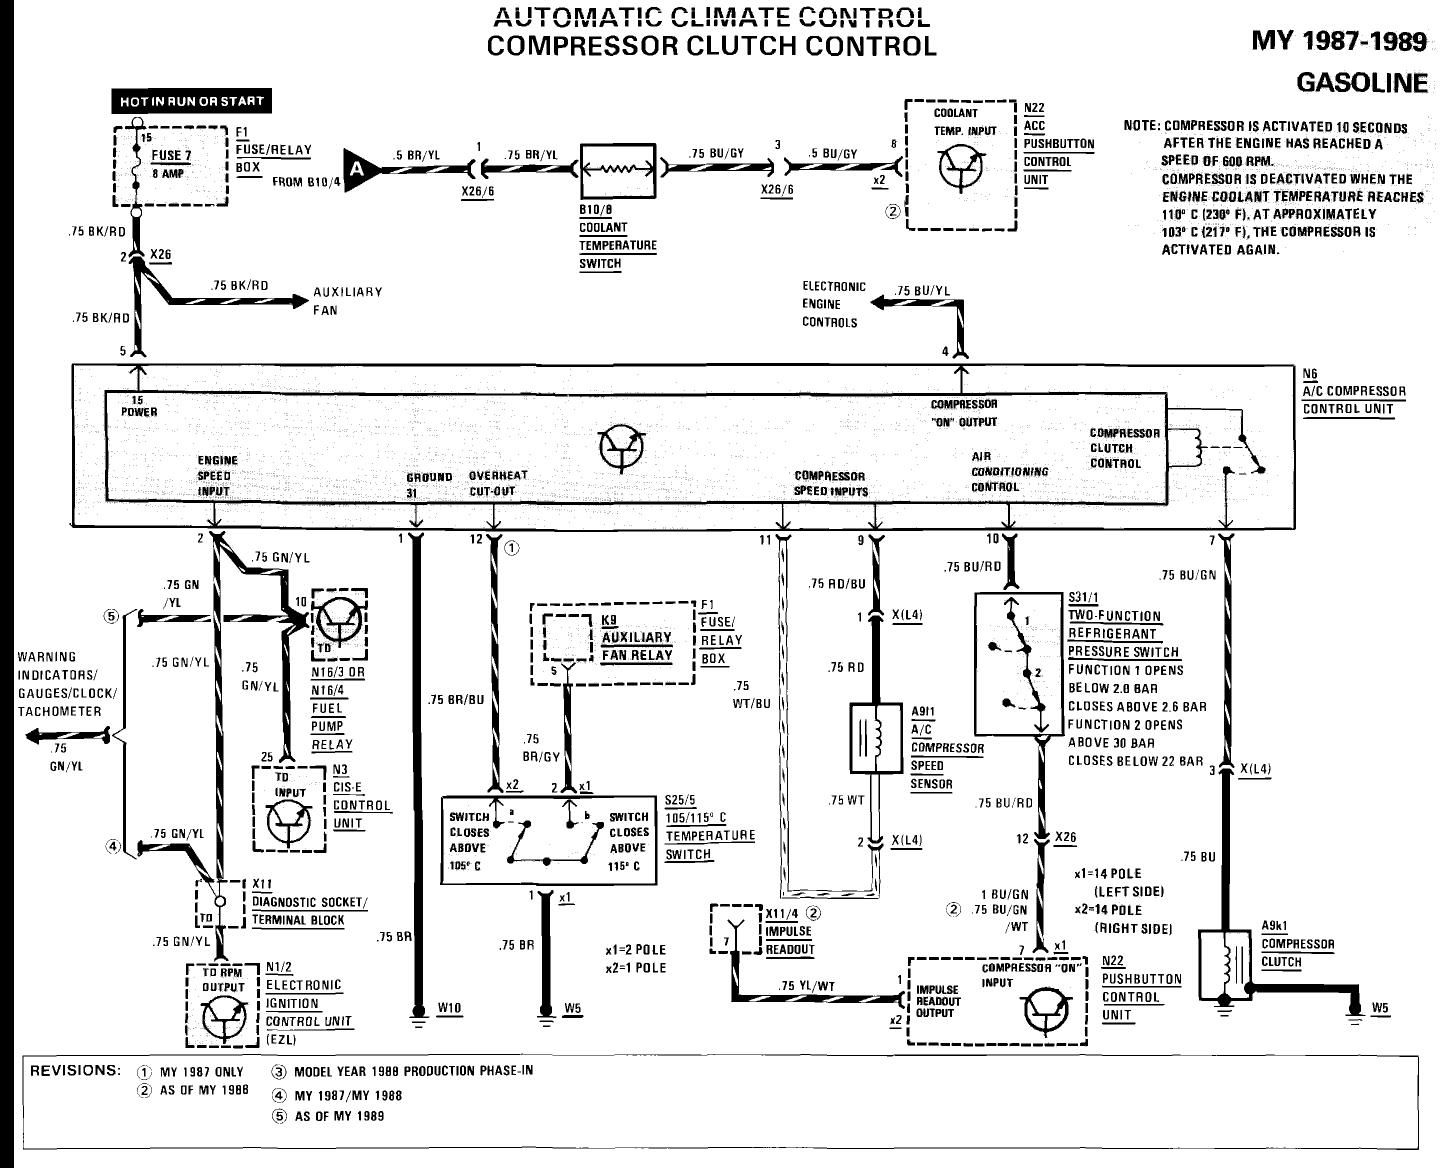 2004 Mazda 6 Headlight Bulb Replacement besides Trailer Light Wiring furthermore Winnebago Battery Solenoid Wiring Diagram likewise 94 F350 Wiring Diagrams also Chevrolet Passenger Electrical Wiring Diagram Auto Diagrams. on how to install trailer lights for your tiny house